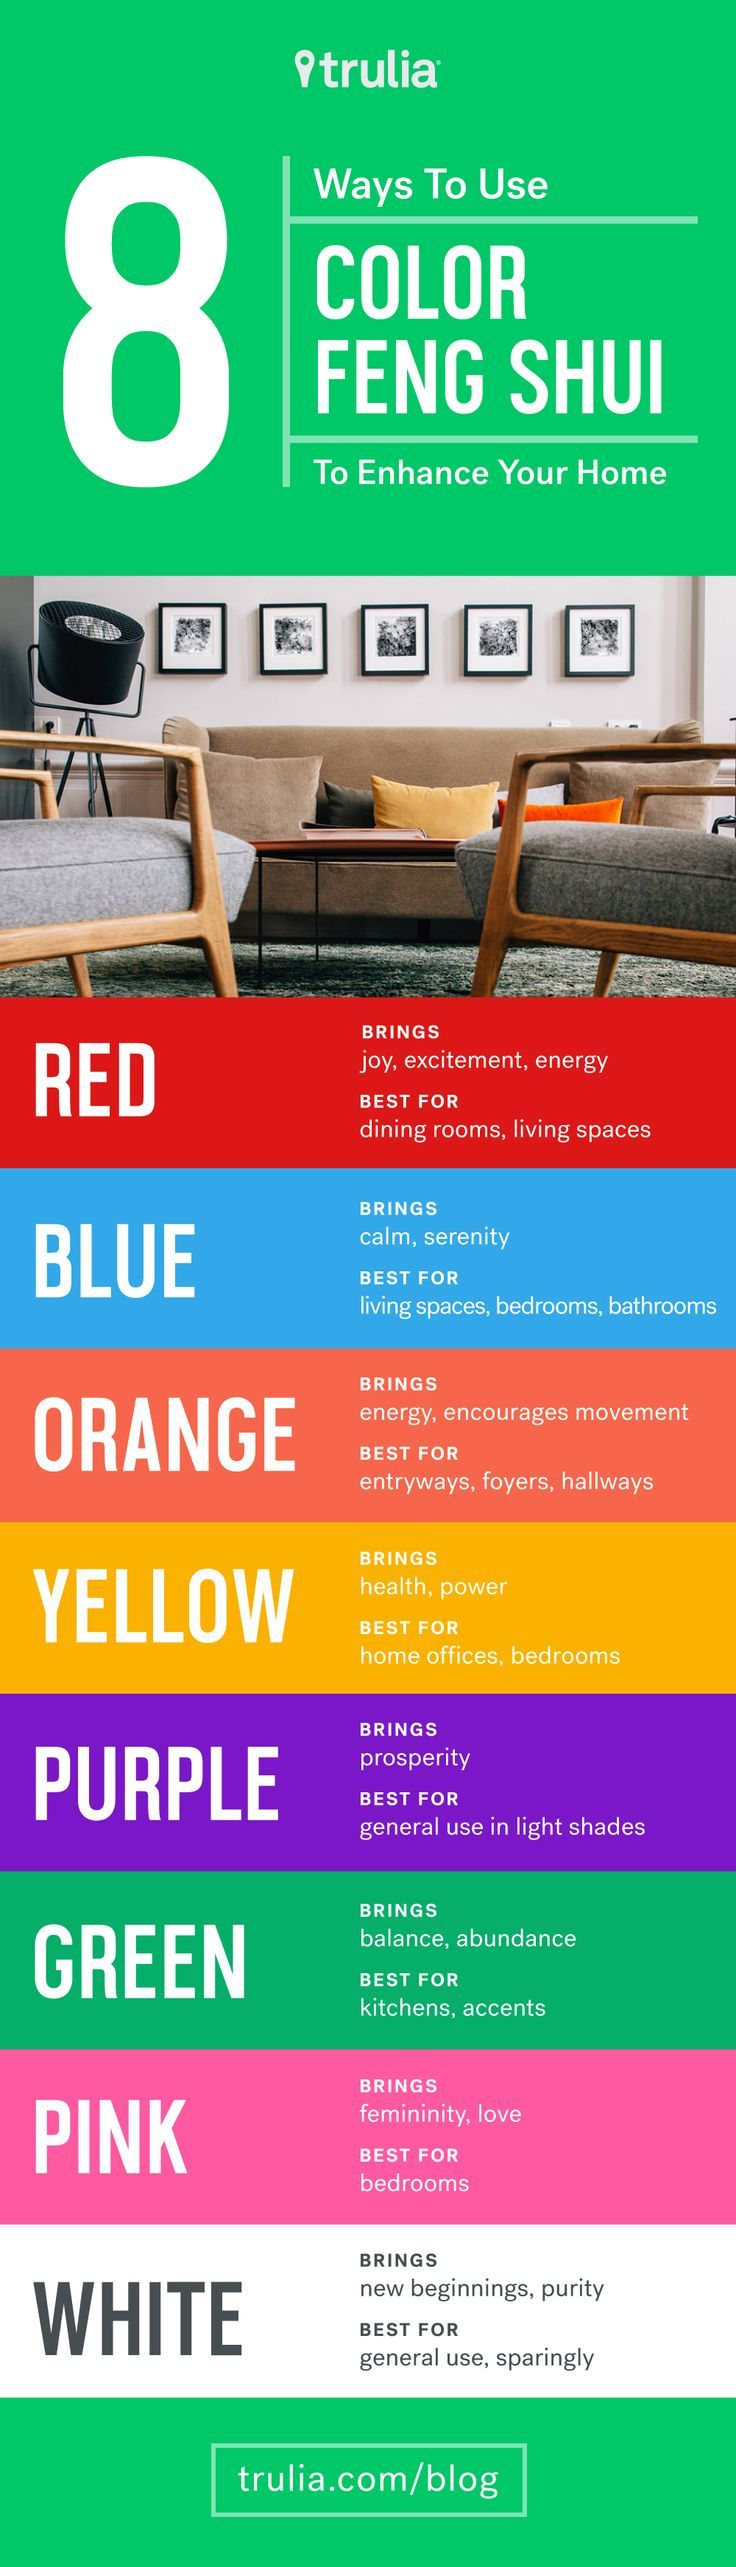 Best Feng Shui Colors For Kitchen Part - 16: 8 Reasons To Use Color Feng Shui To Enhance Your Home U2013 Life At Home U2013  Trulia Blog